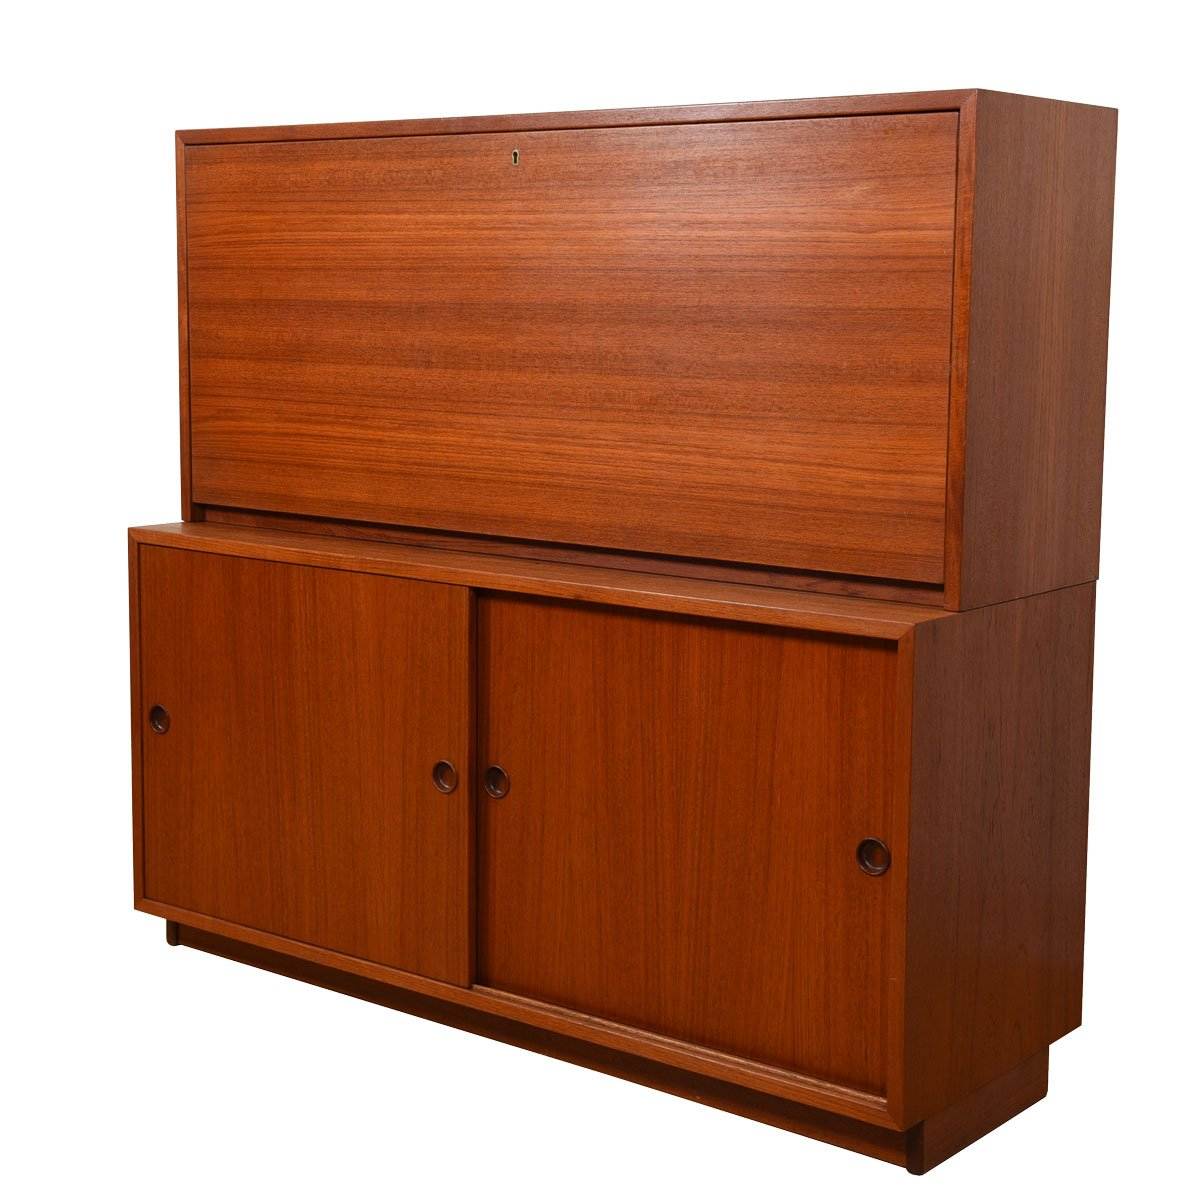 2-Piece Danish Teak Drop-Down Secretary / Sliding Door Cabinet